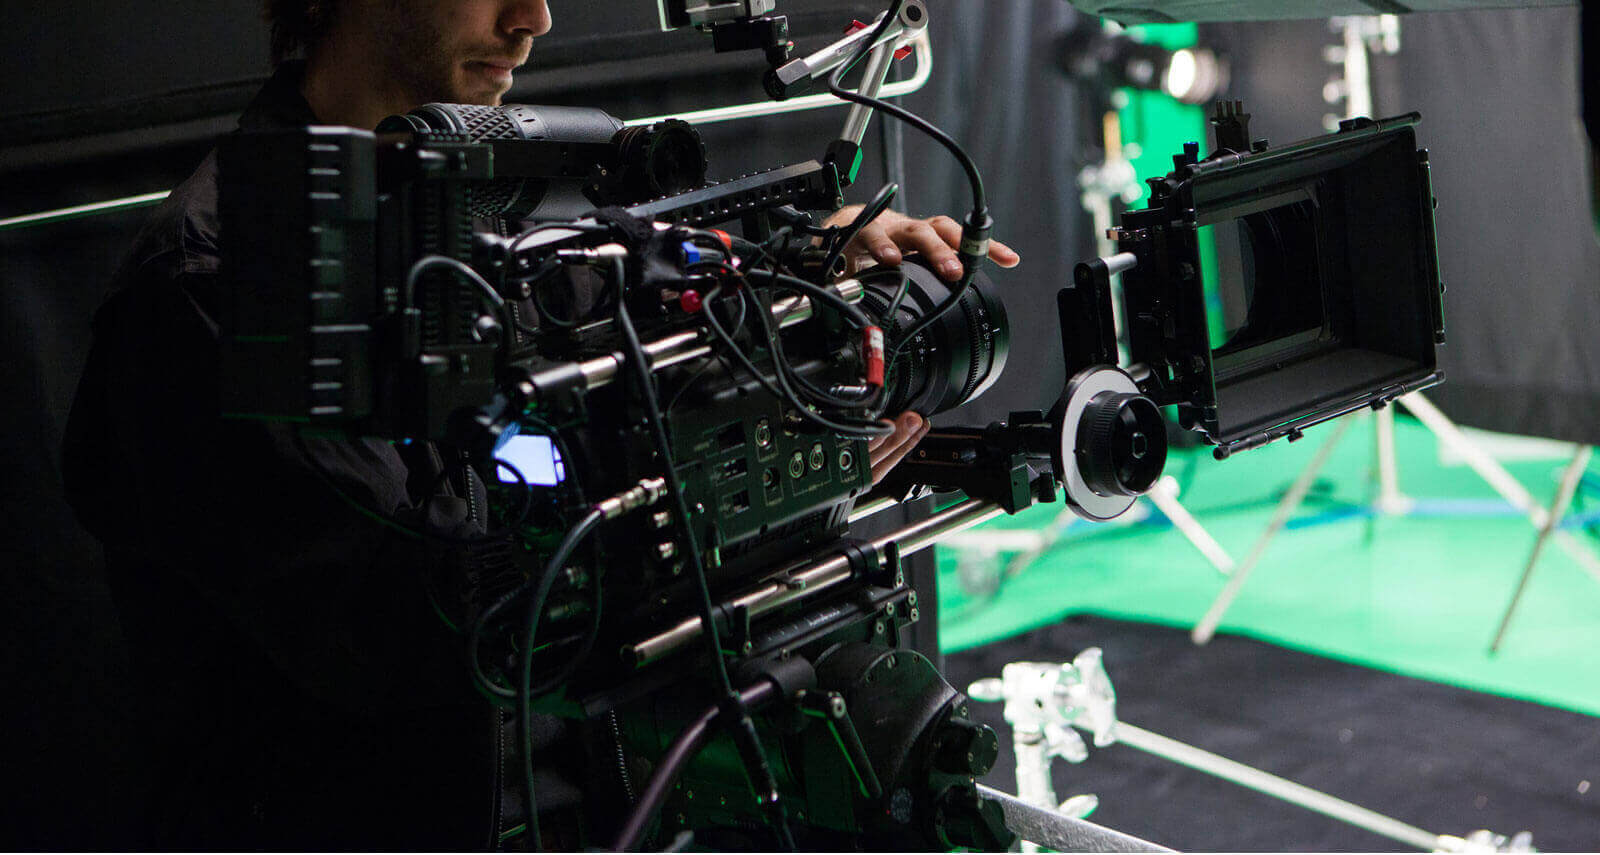 FOLLOW THE MONEY: VIDEO PRODUCTION COSTS